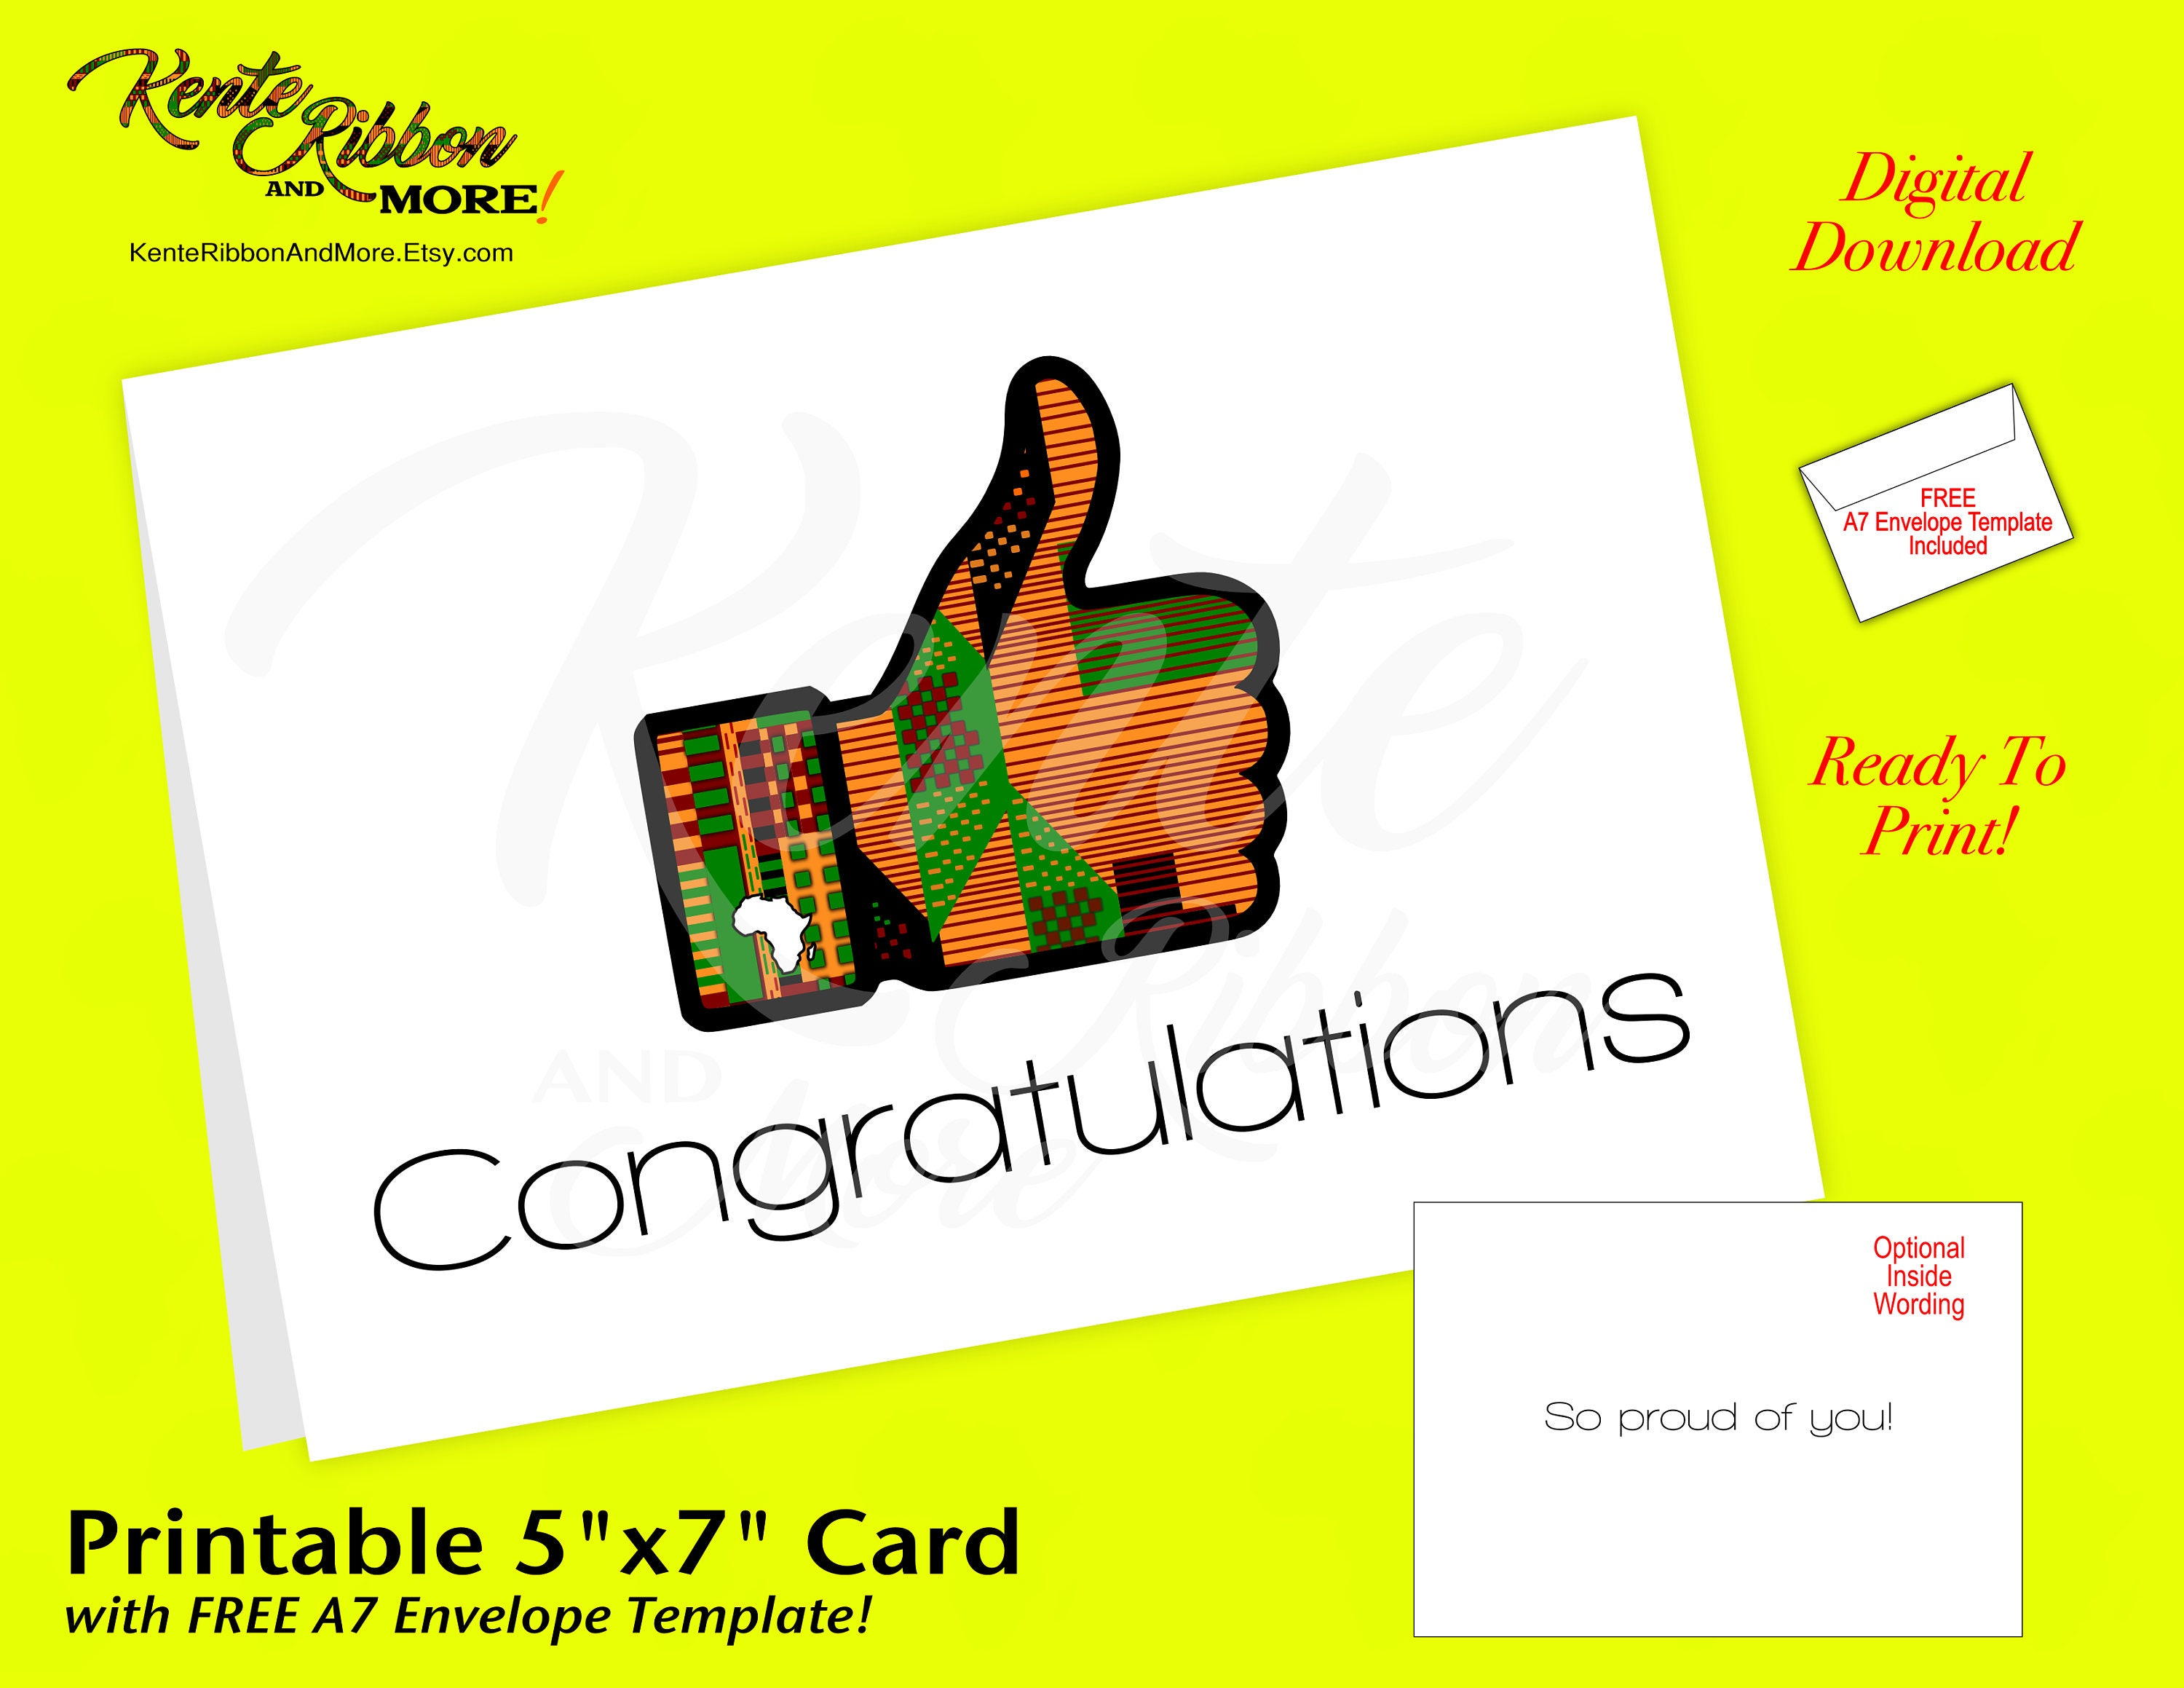 diy congratulations kente thumbs up 5x7 note card template etsy